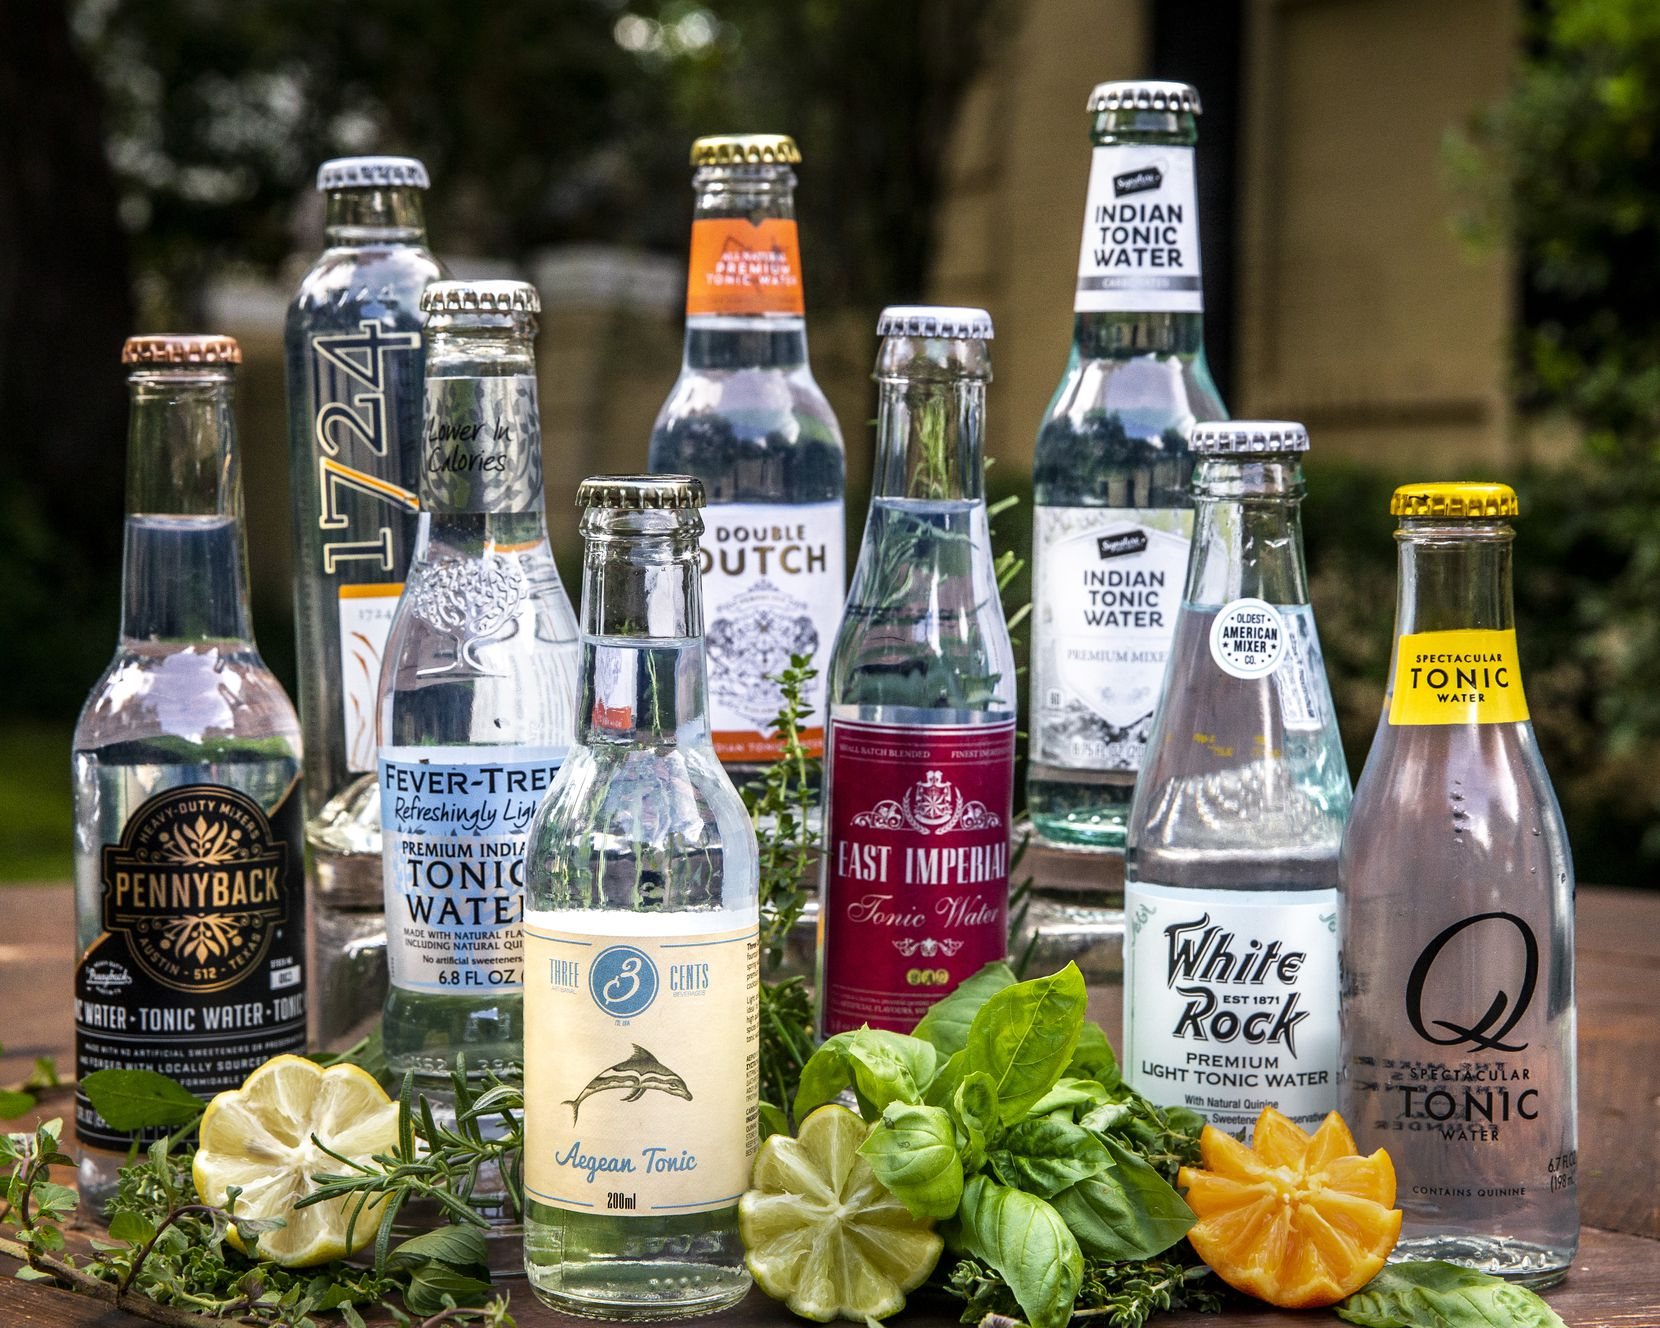 An array of bottled tonic waters include Pennyback, 1724, Fever-Tree, Three Cents, Double Dutch, East Imperial, Signature, White Rock and Q Tonic.